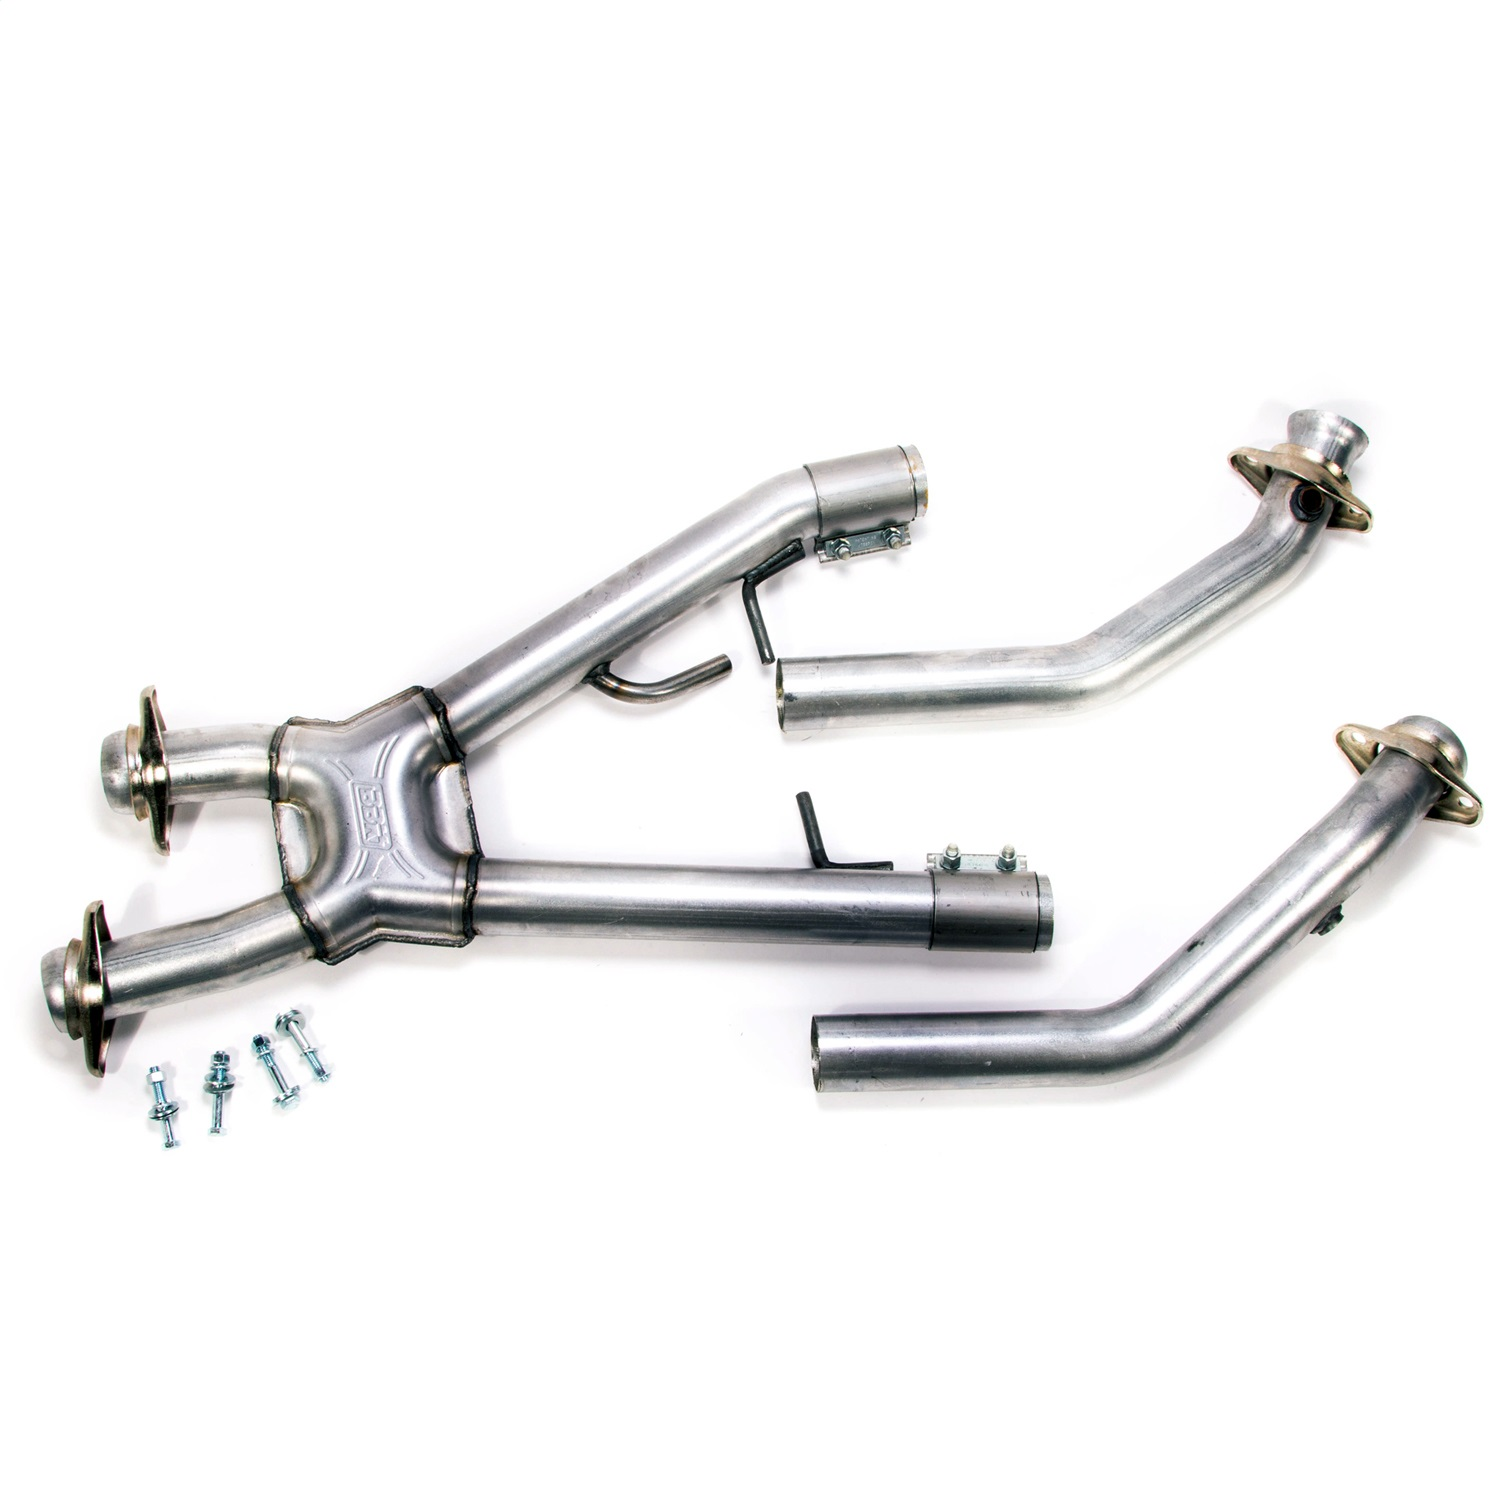 bbk performance 1669 off road x-pipe